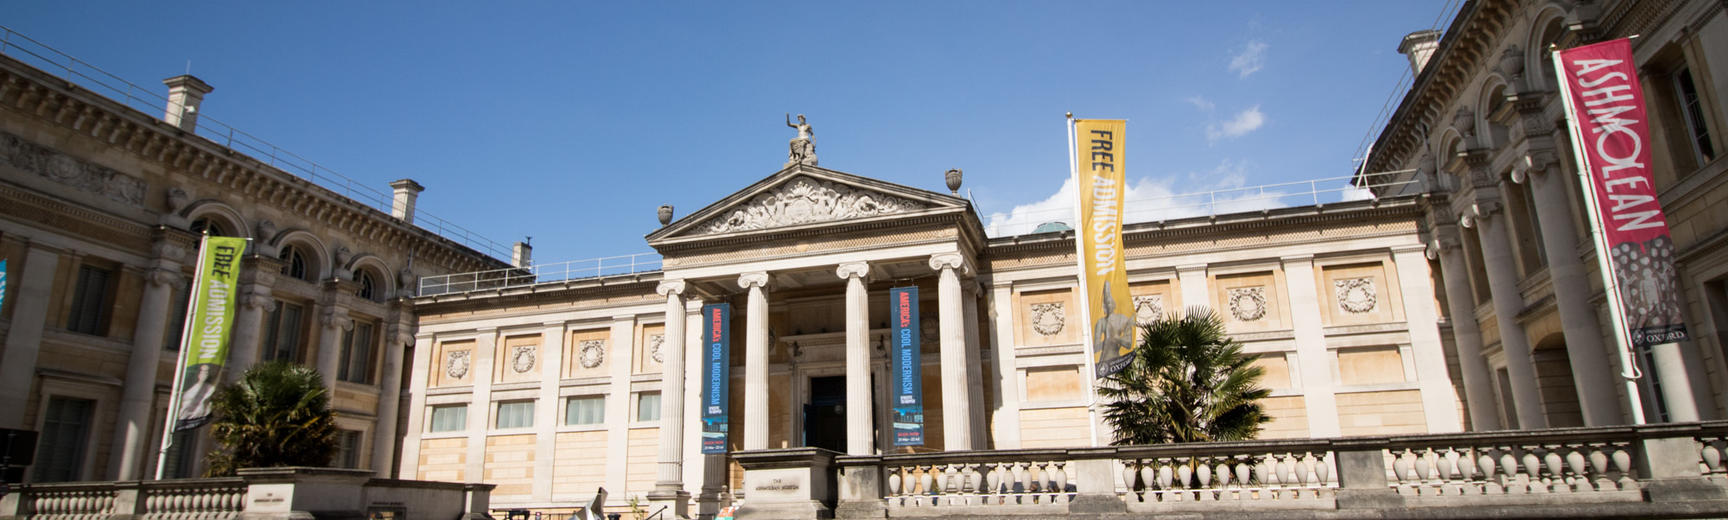 Photograph of the front of the Ashmolean Museum